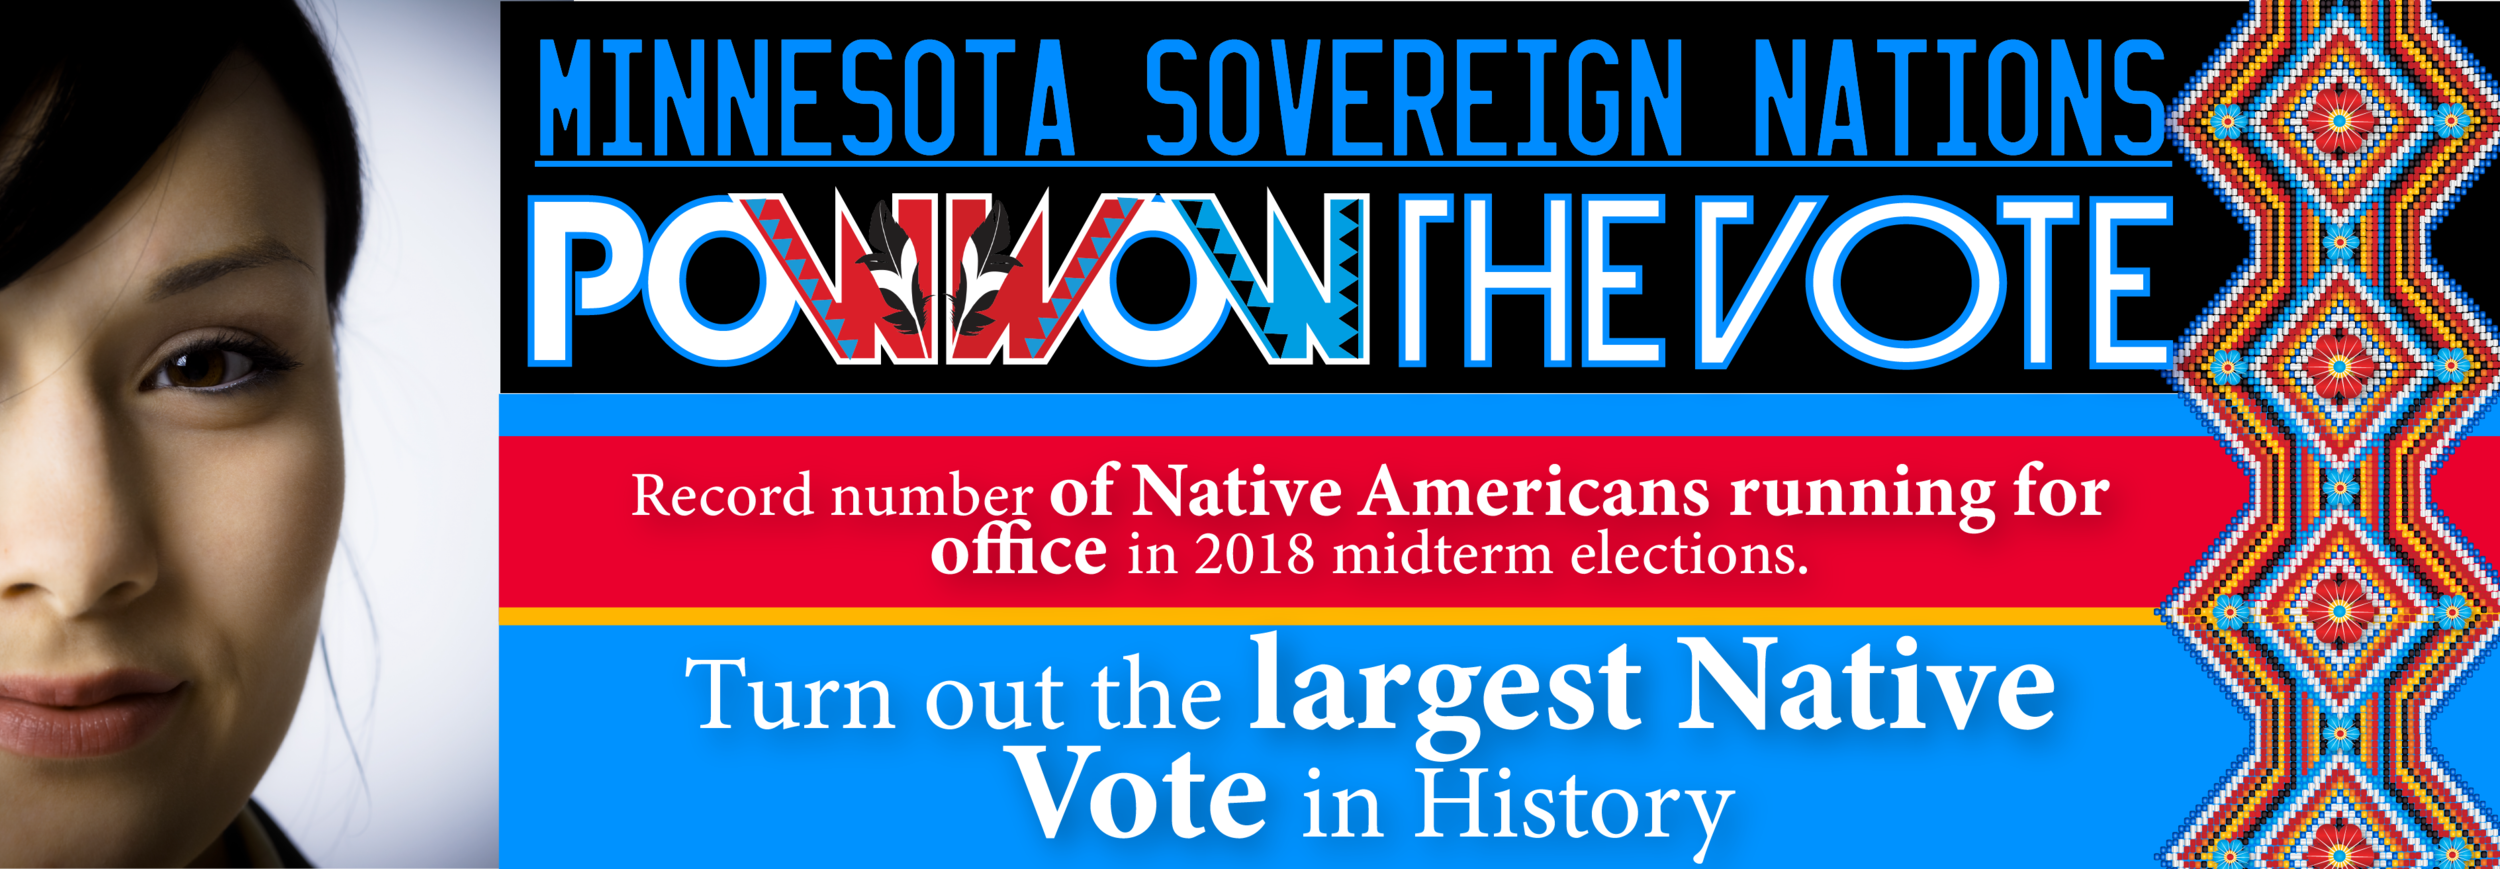 June 2, 1924 , Congress granted citizenship to all Native Americans born in the  U.S.  Yet even after the Indian Citizenship Act, some Native Americans weren't allowed to vote because the right to vote was governed by  state law .  Yes, Native Americans were given the right to vote in the Voting Rights Act of 1965; before that time different states disallowed them to vote for different reasons.  Until 1957, some states barred Native Americans from voting. Let's Pow Wow the Vote … Be part of history.